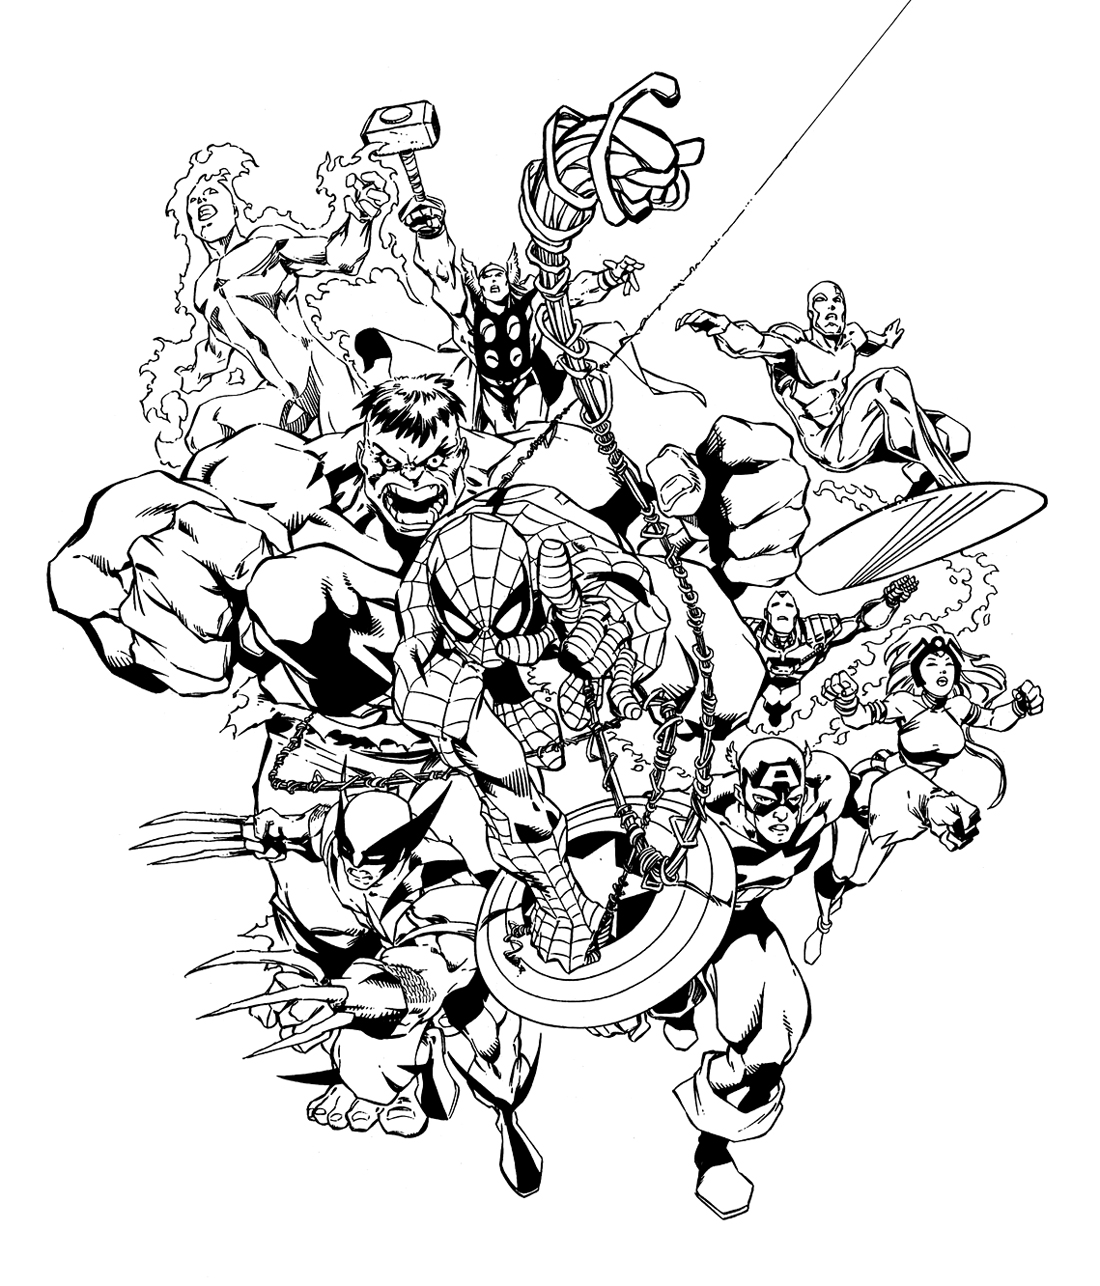 marvel pictures to colour marvel coloring pages best coloring pages for kids pictures colour marvel to 1 1